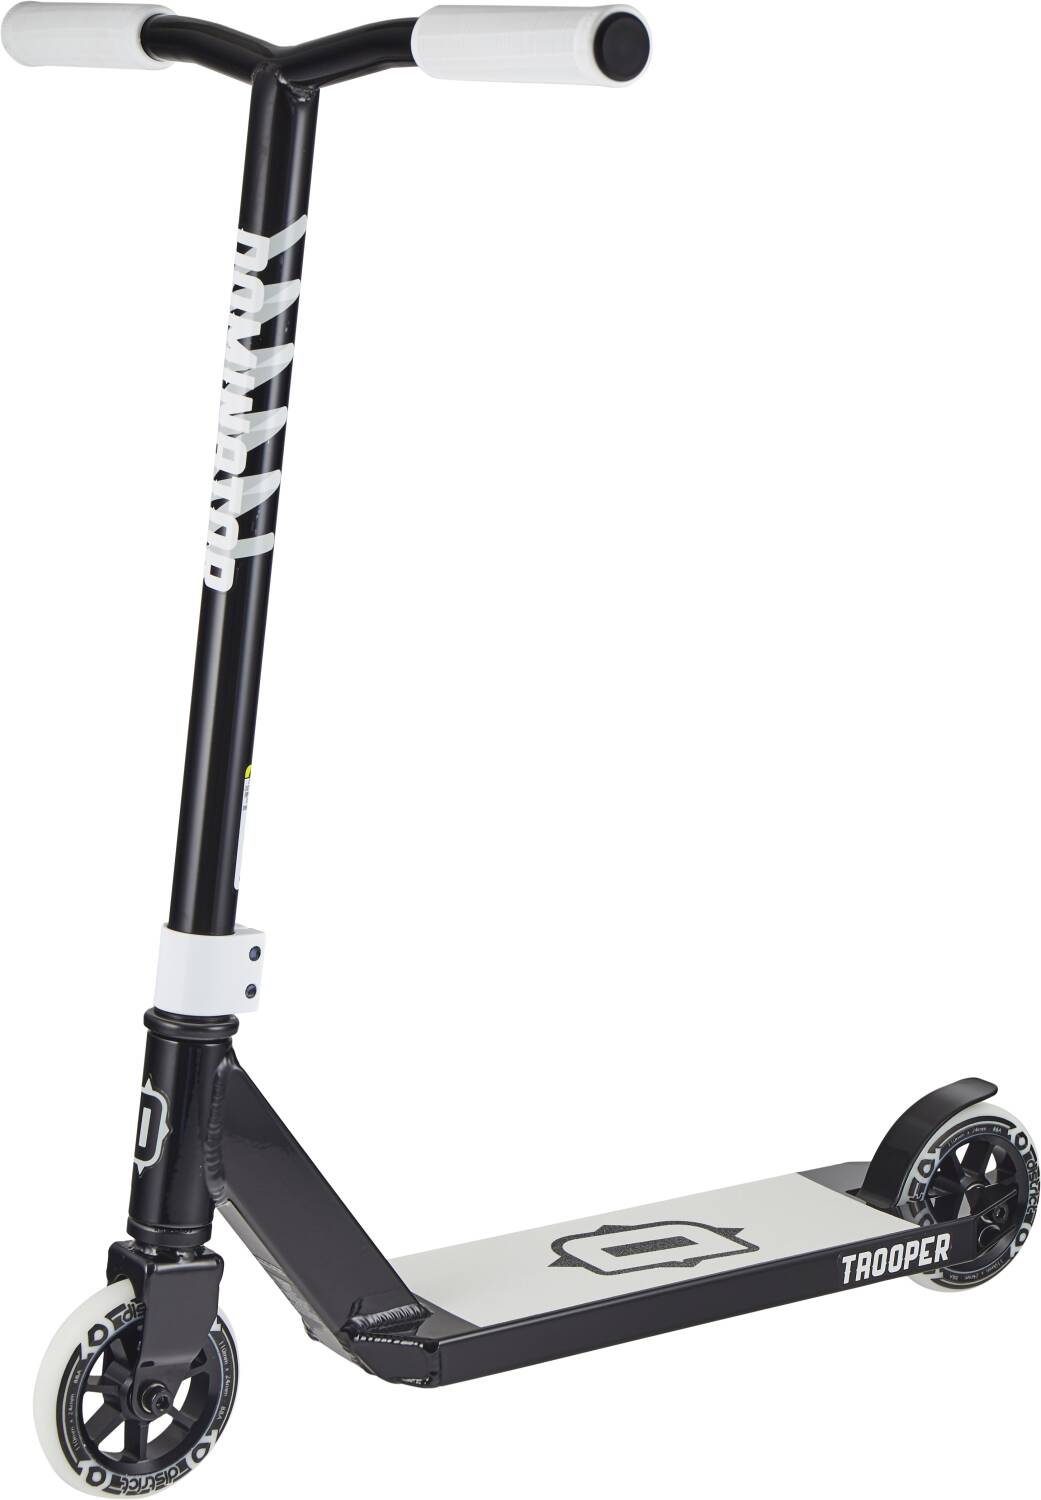 Dominator Trooper Scooter - Black / White